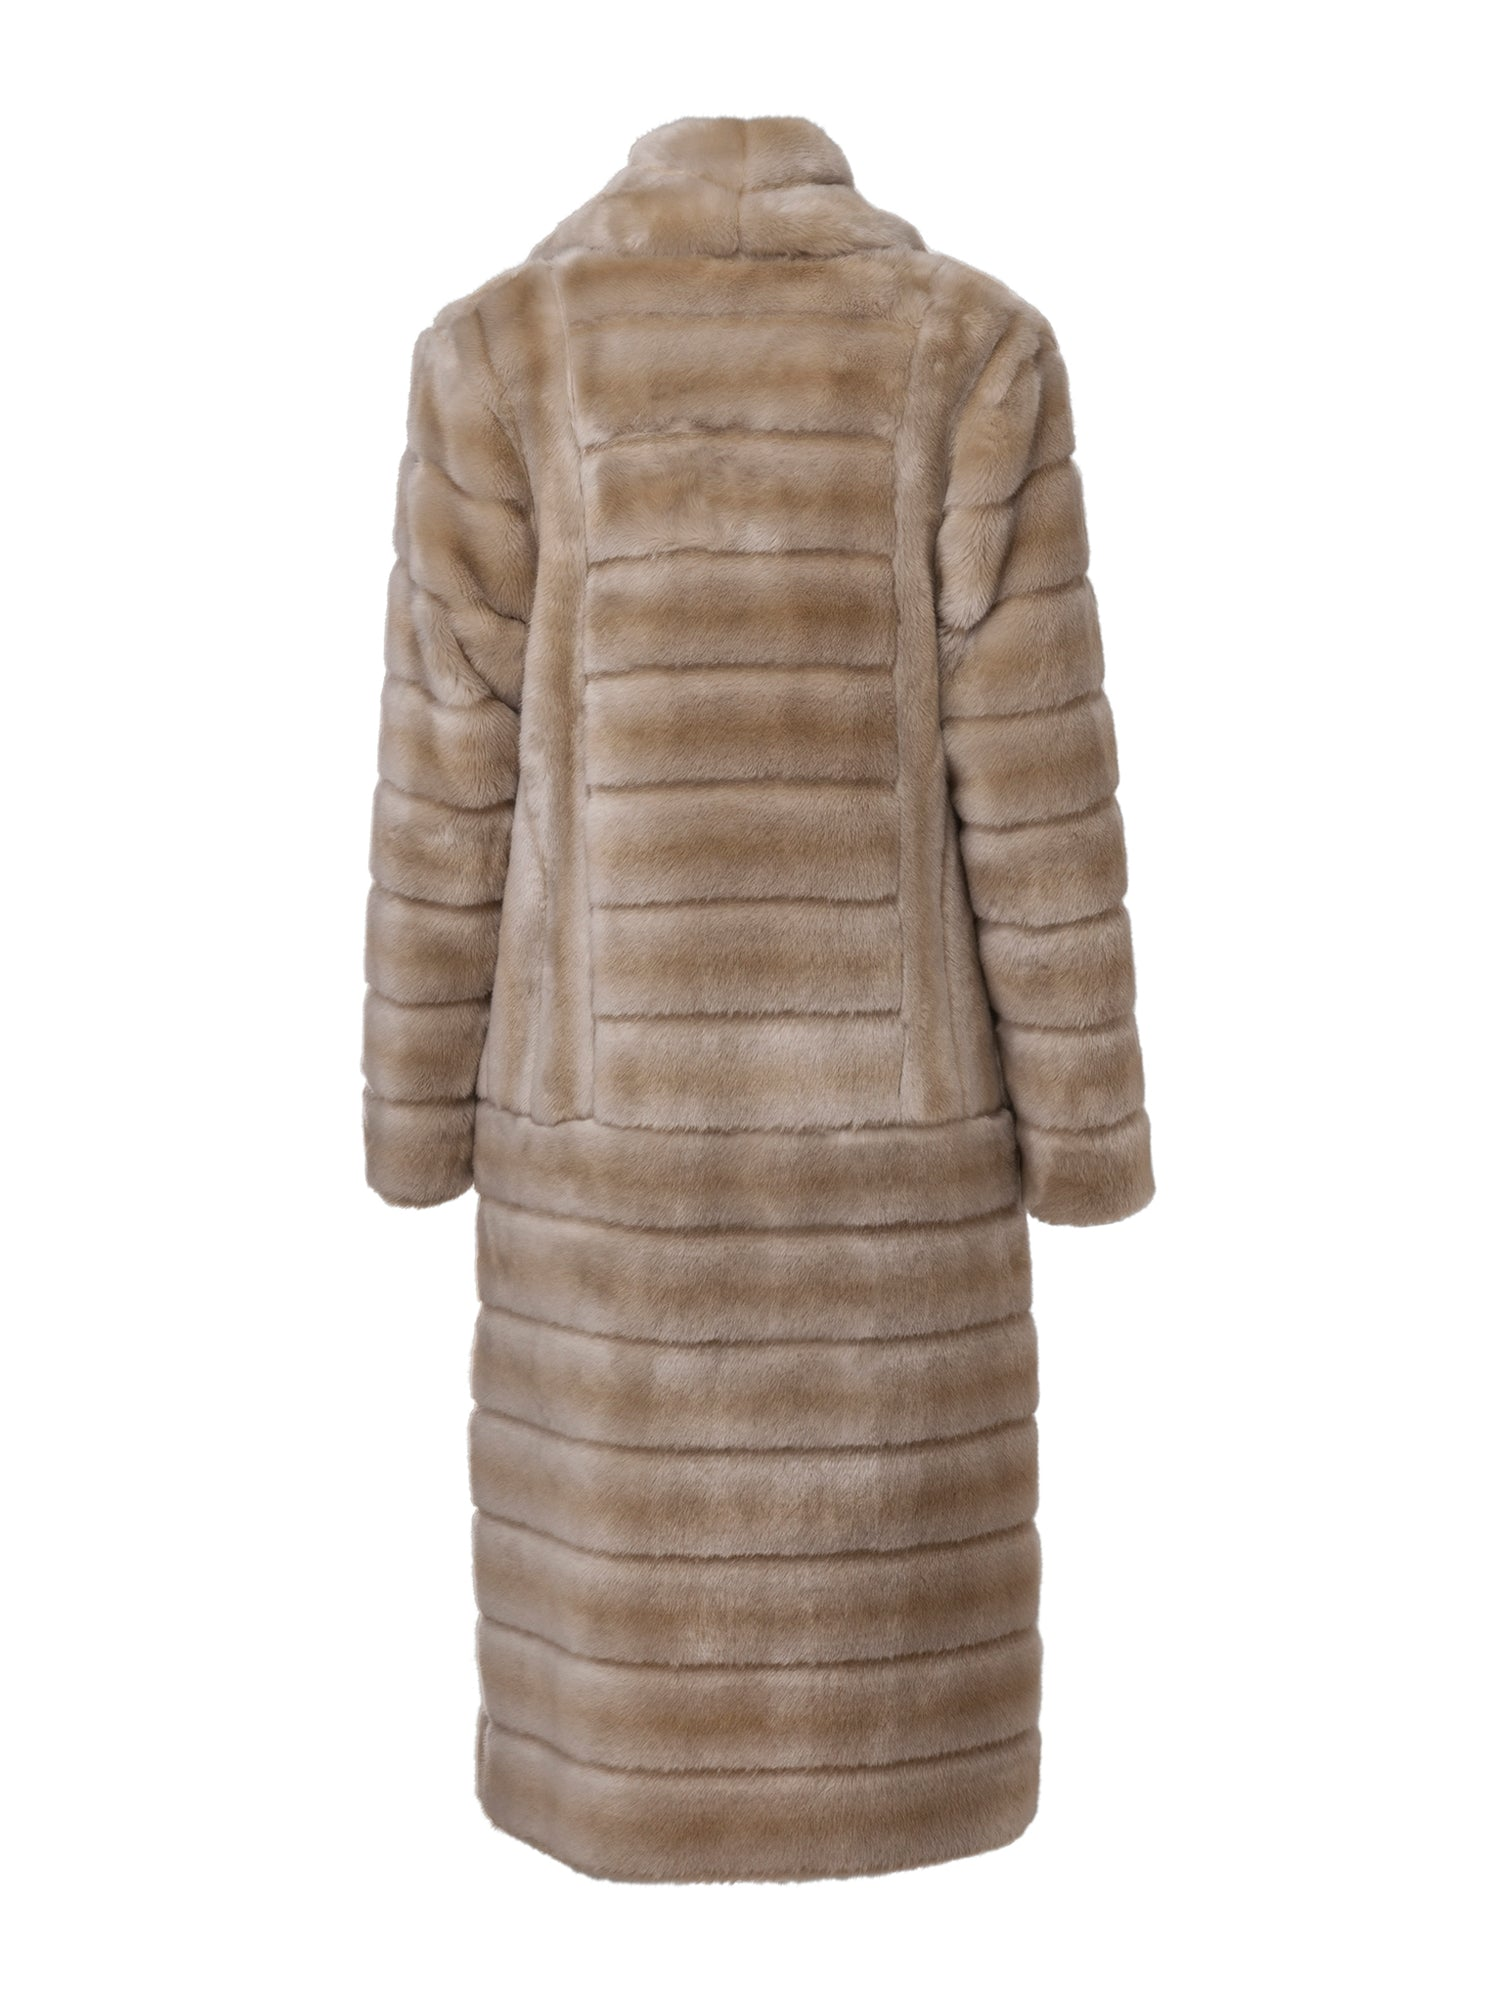 A Packshot Of Marei1998's Timeless Echinacea Long Faux Fur Coat In The Classiest Natural/Beige Color. Featuring Calf Length, Oversized Silhouette And Wide Shawl Neckline. Investment Piece / Winter Essential. Back View. Resort 2020 Collection - Furless Friendship.